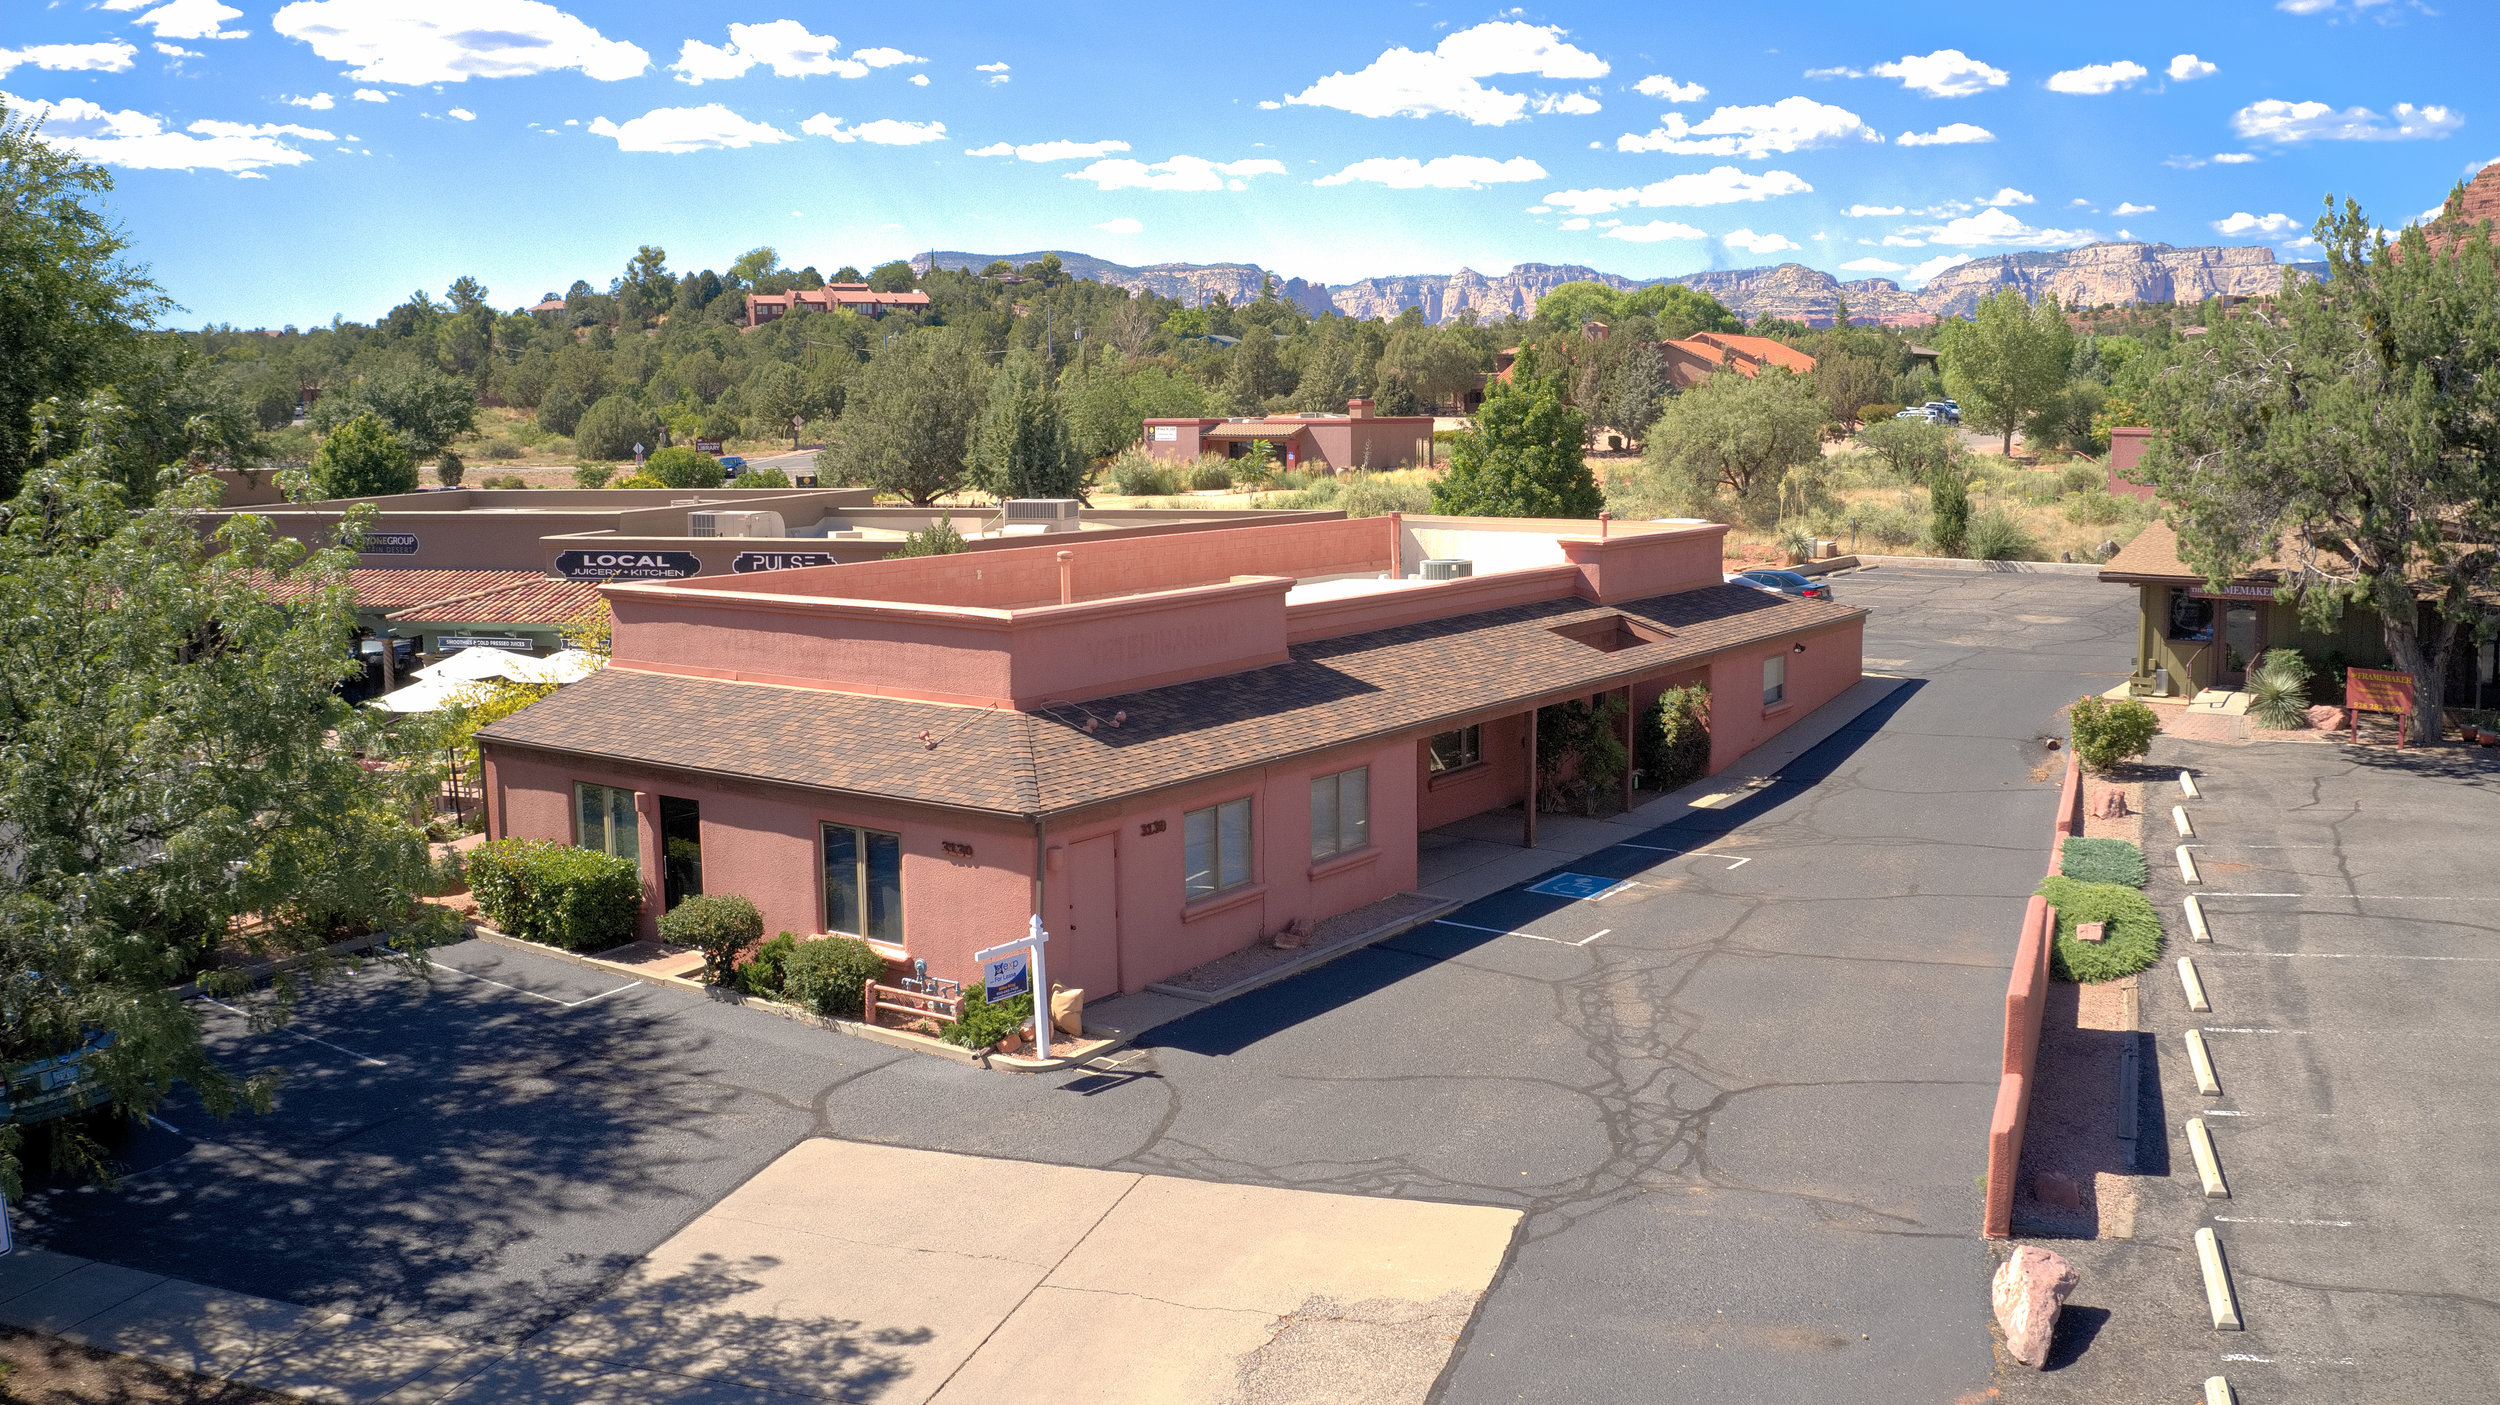 OAK CREEK SMALL ANIMAL CLINIC    3130 W SR 89A - SEDONA, AZ